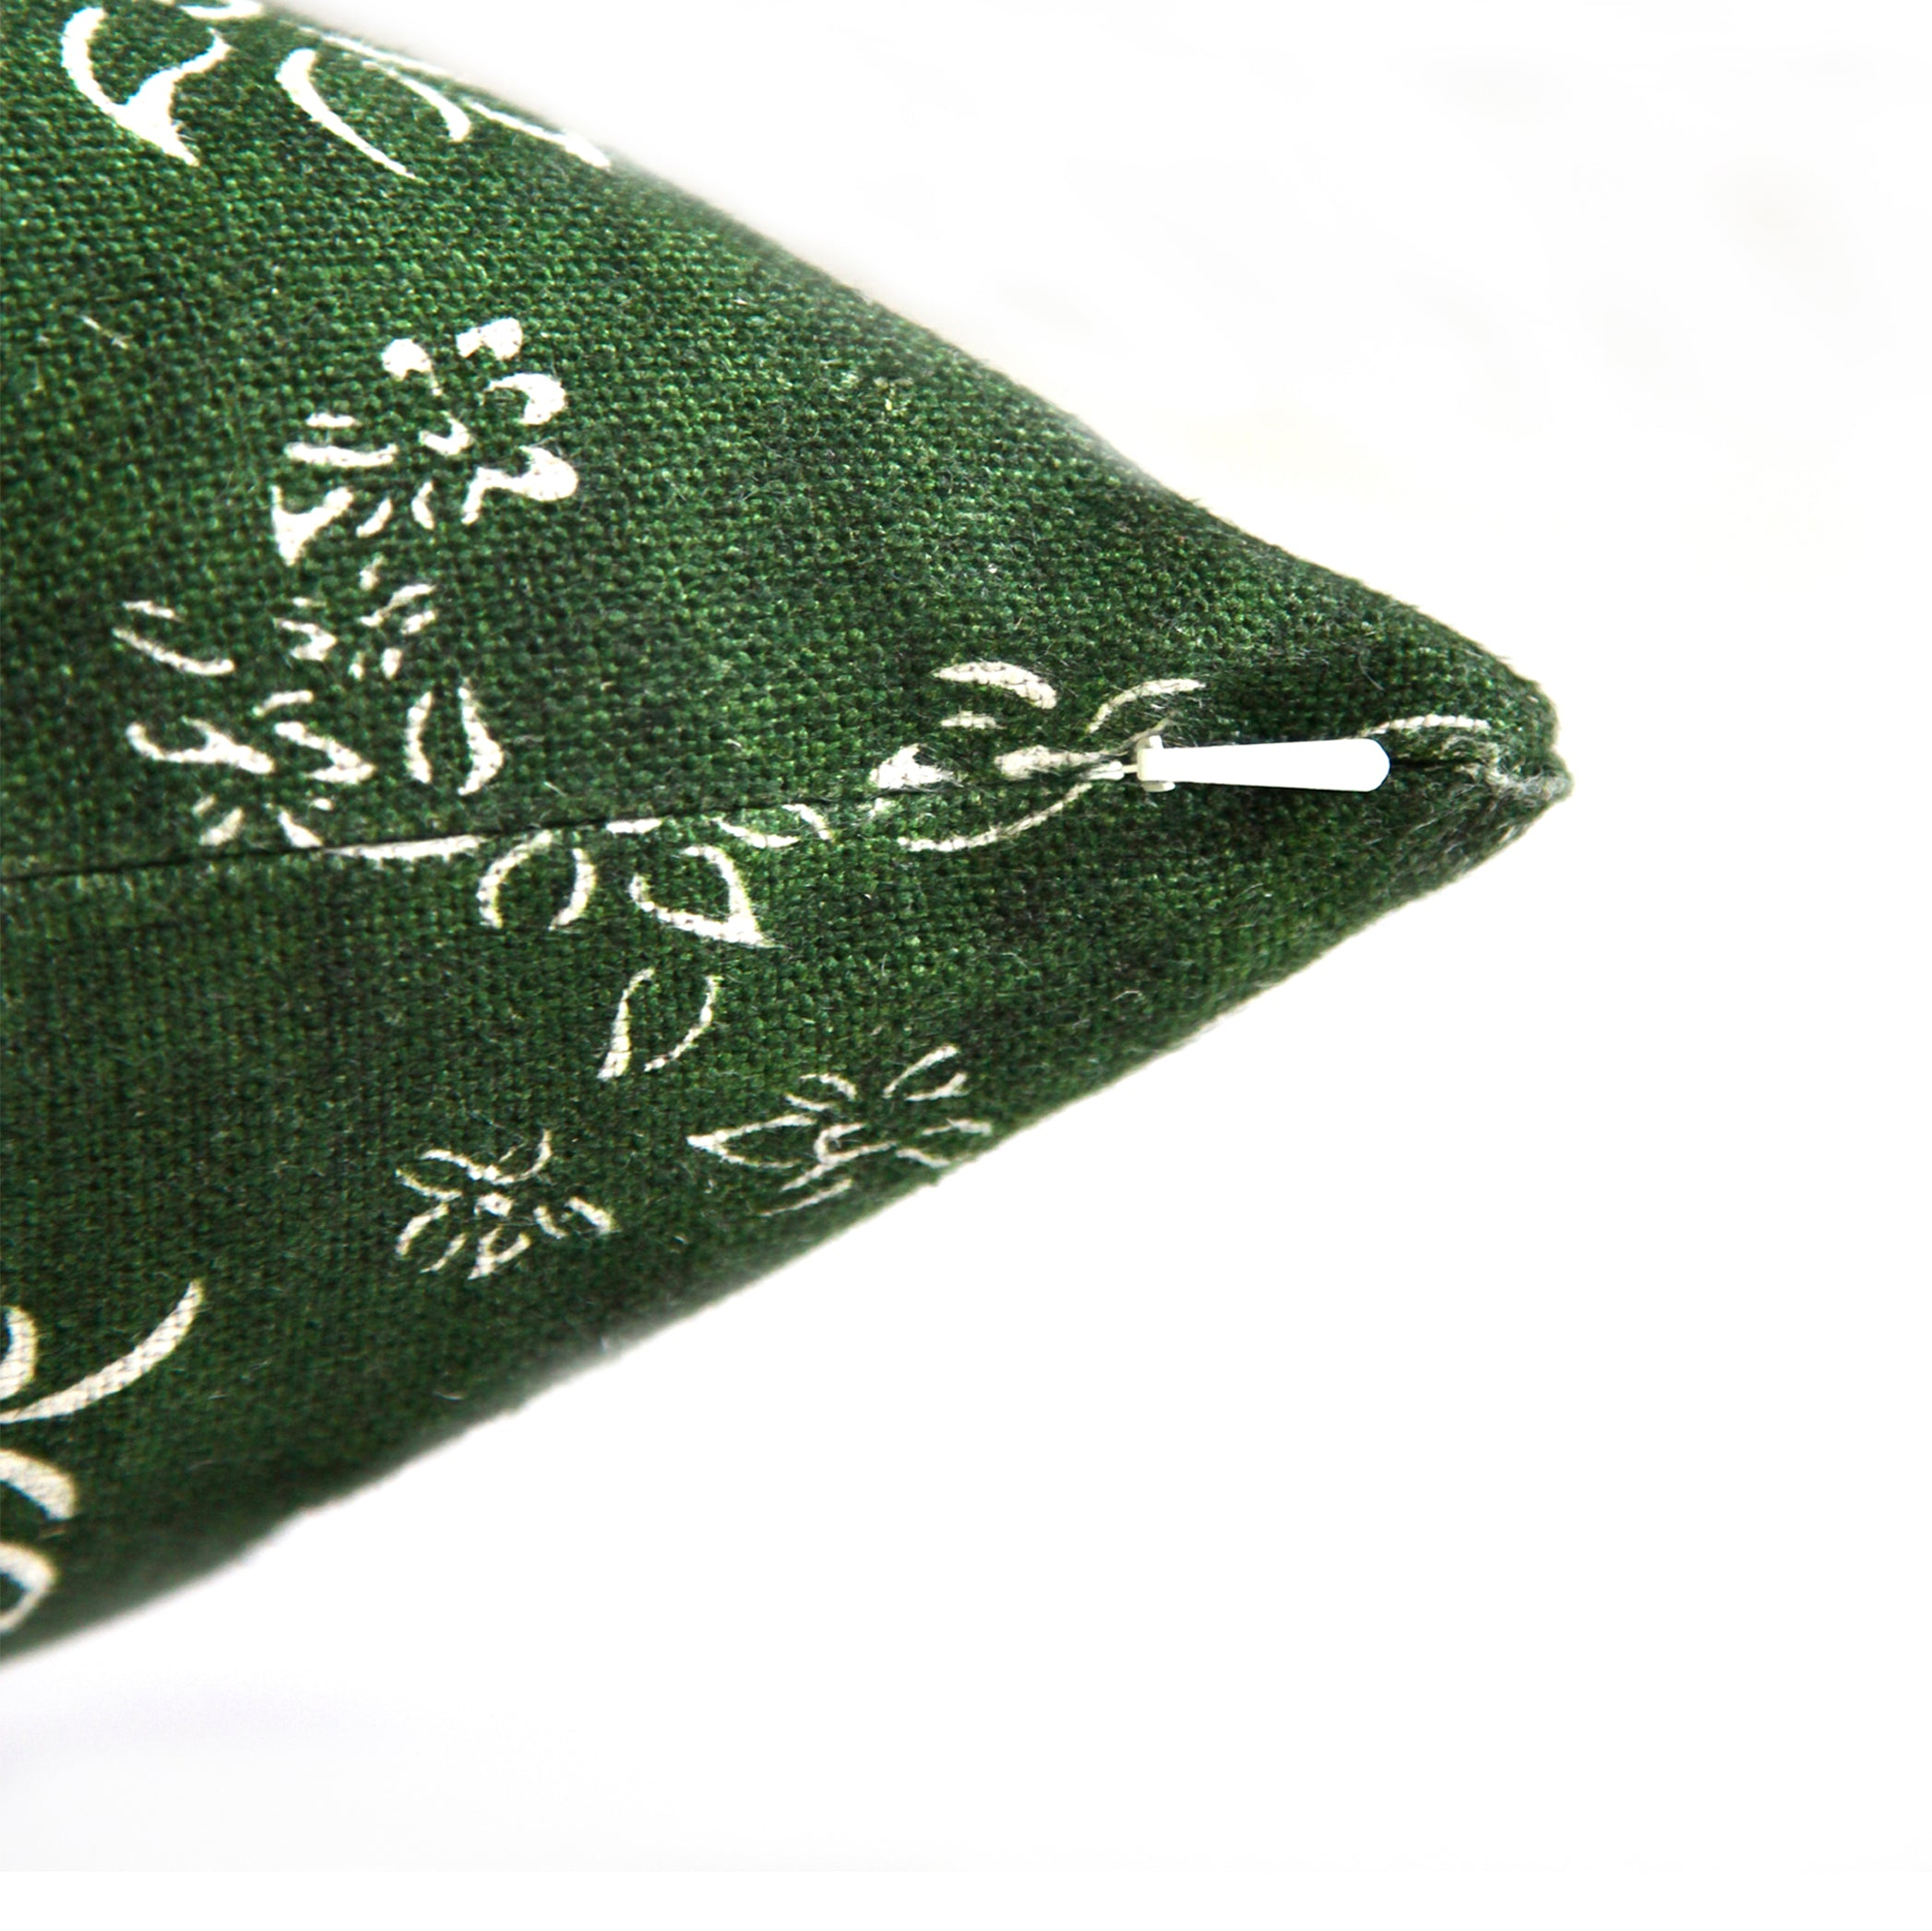 Heavy Linen Falling Flower Cushion in Full Field Green, 50cm x 30cm